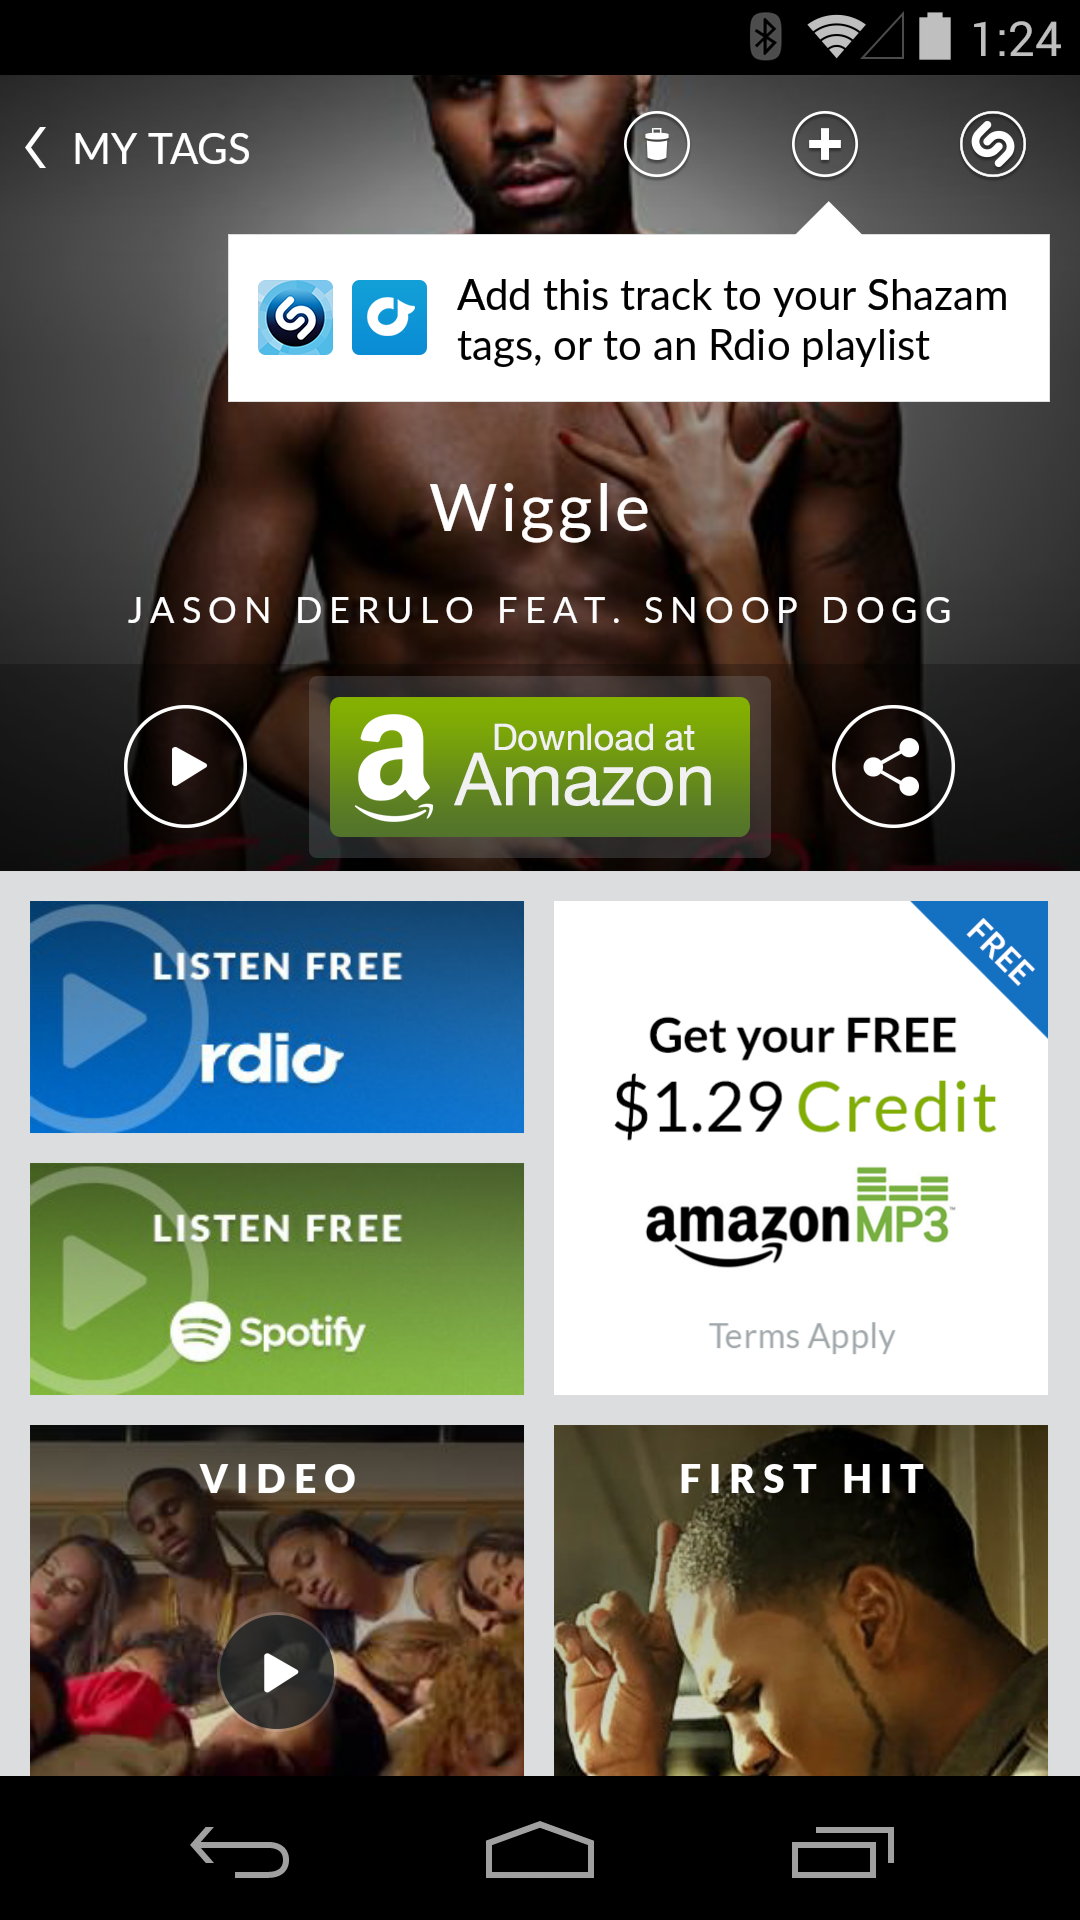 Deal Alert] Shazam A Song And Get $1 29 In Amazon MP3 Credit